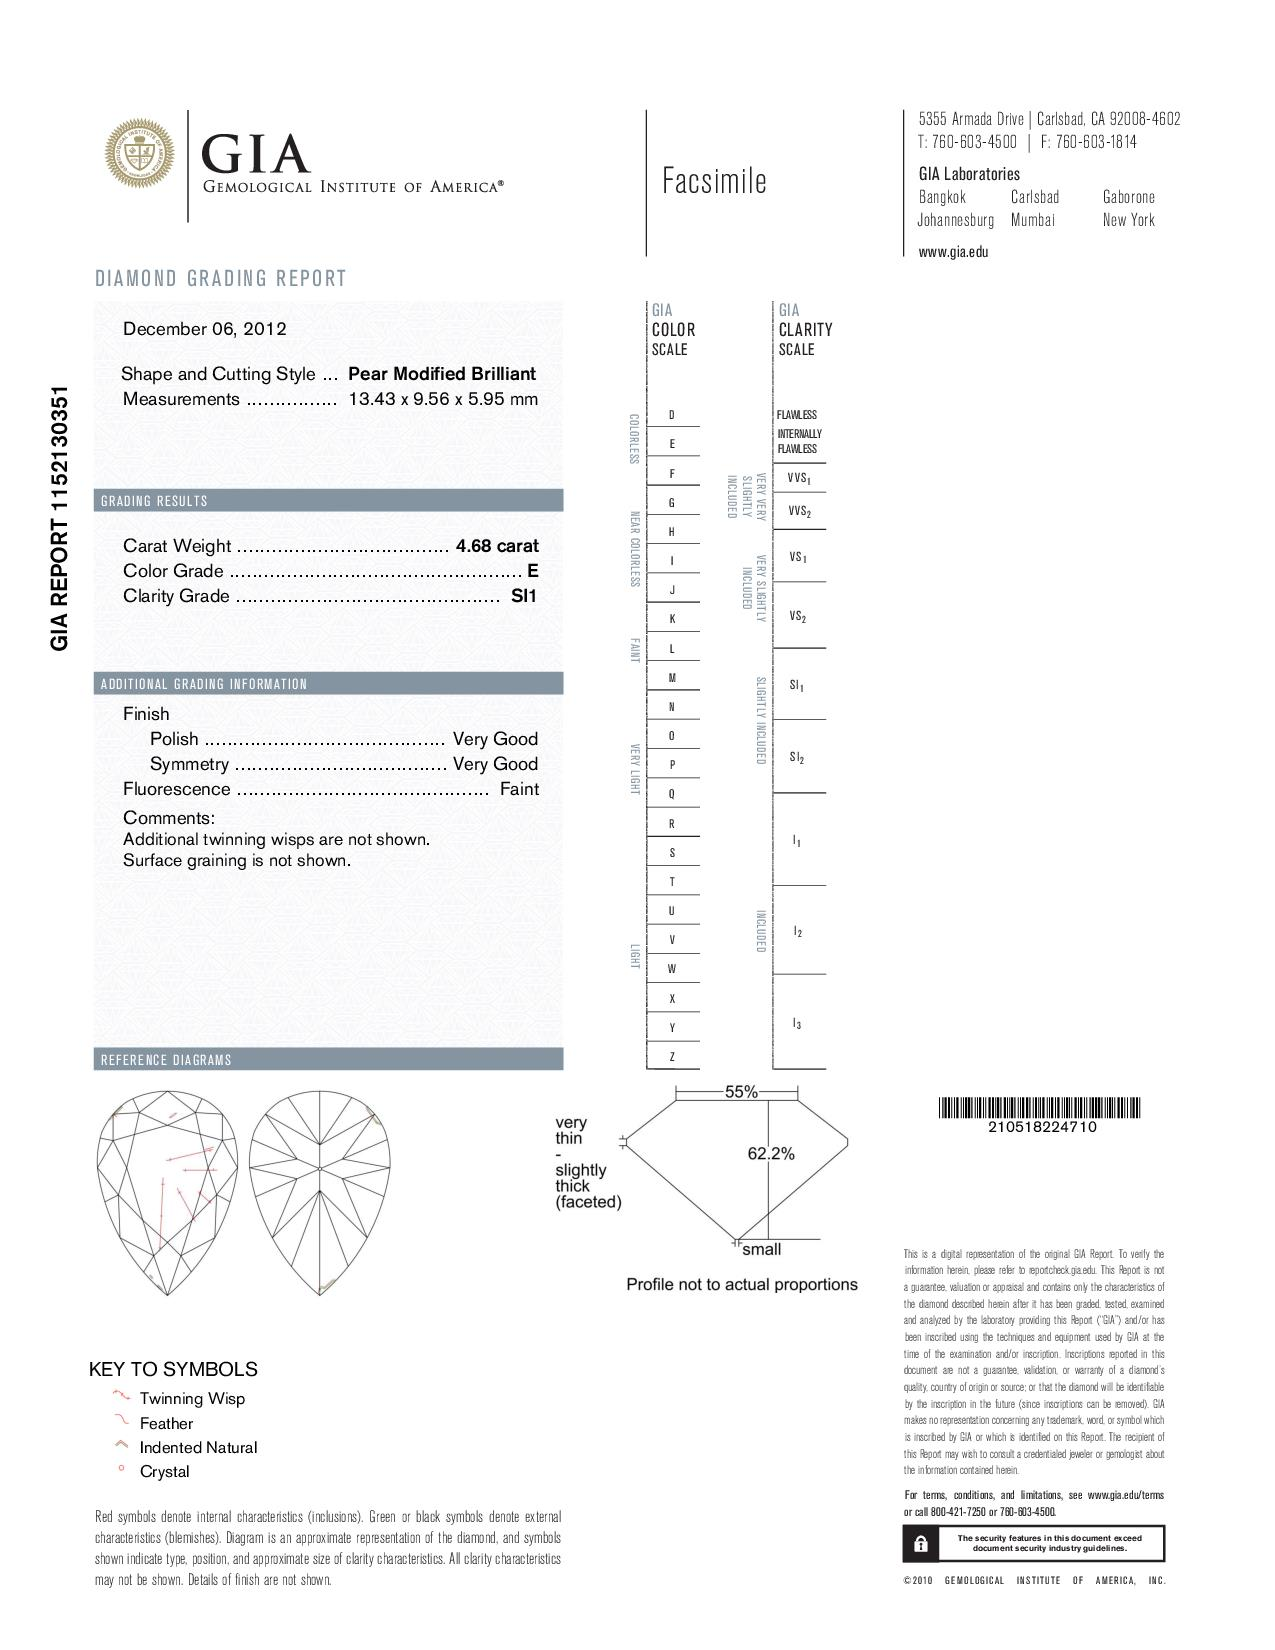 This is a 4.68 carat pear shape, E color, SI1 clarity natural diamond accompanied by a GIA grading report.